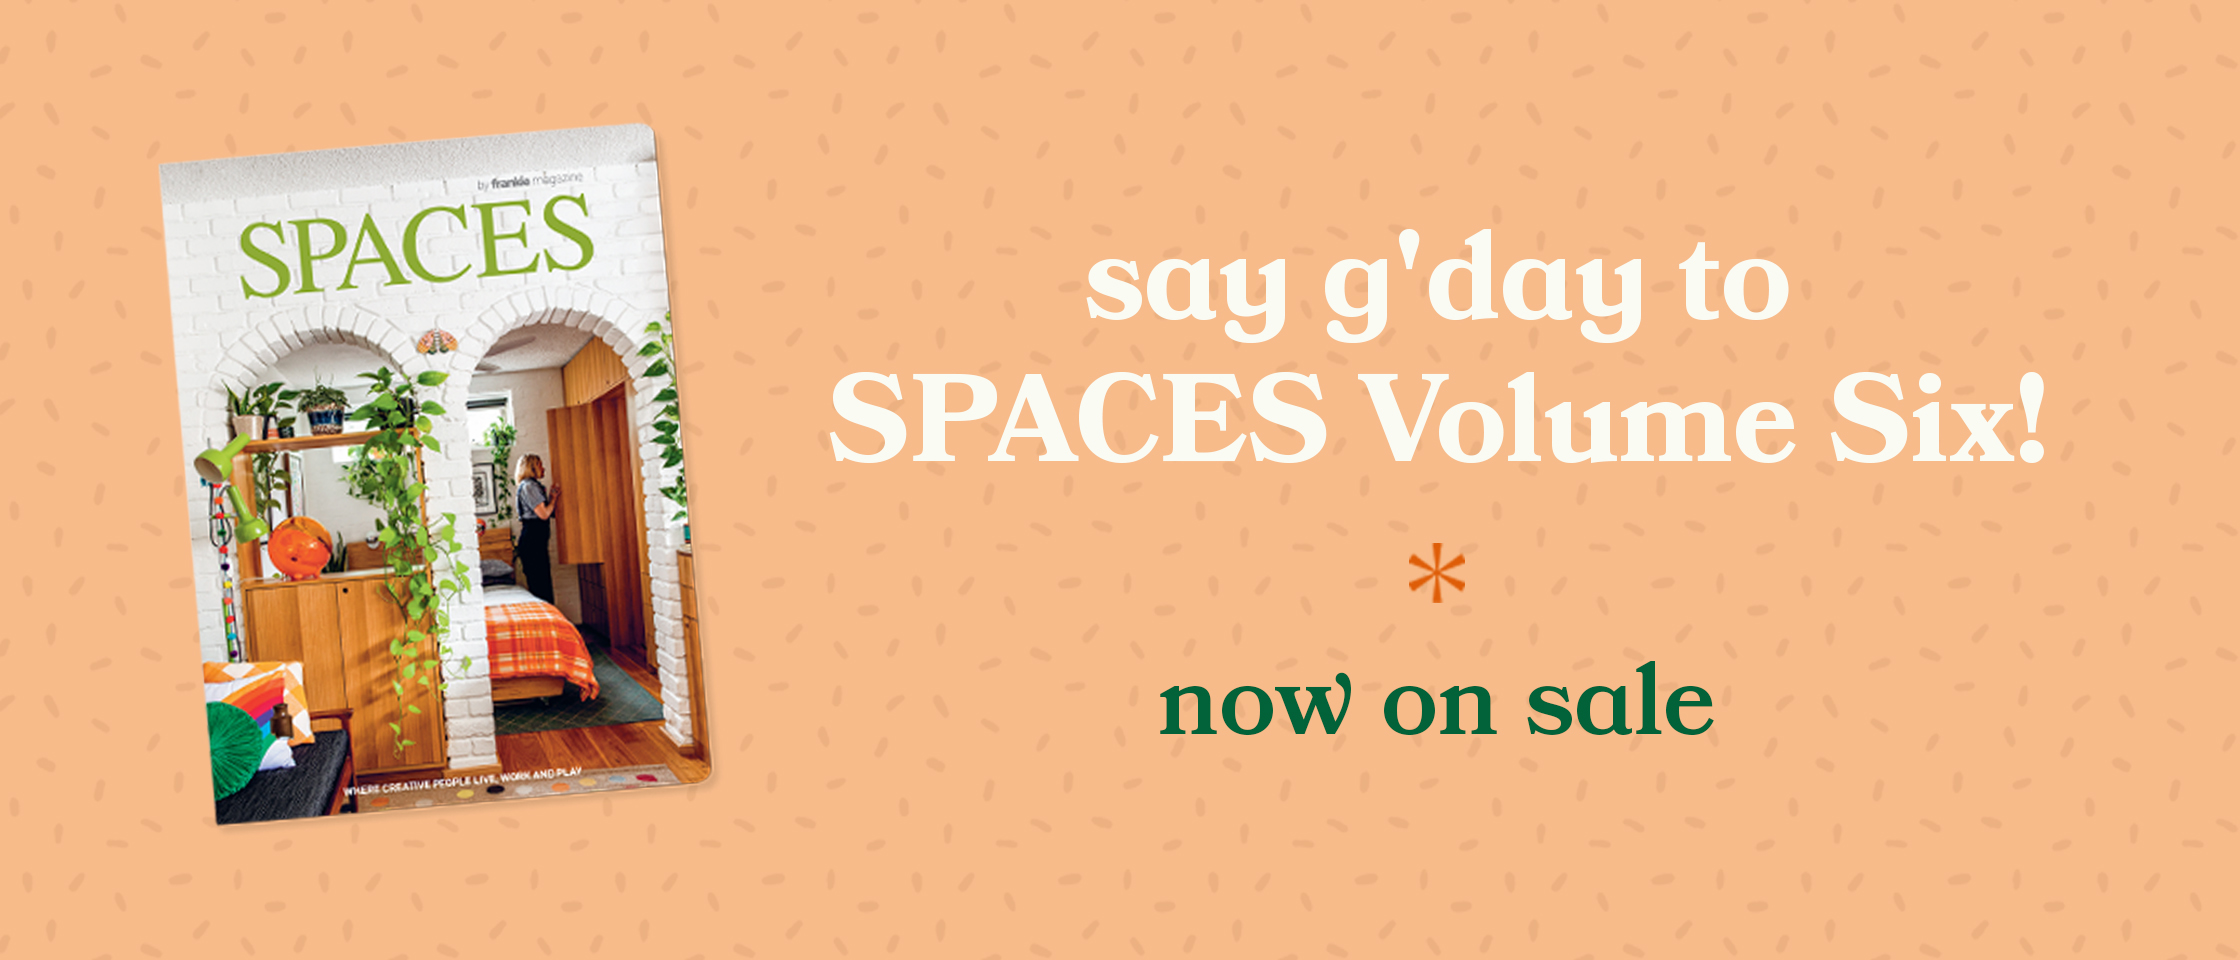 spaces volume six now on sale